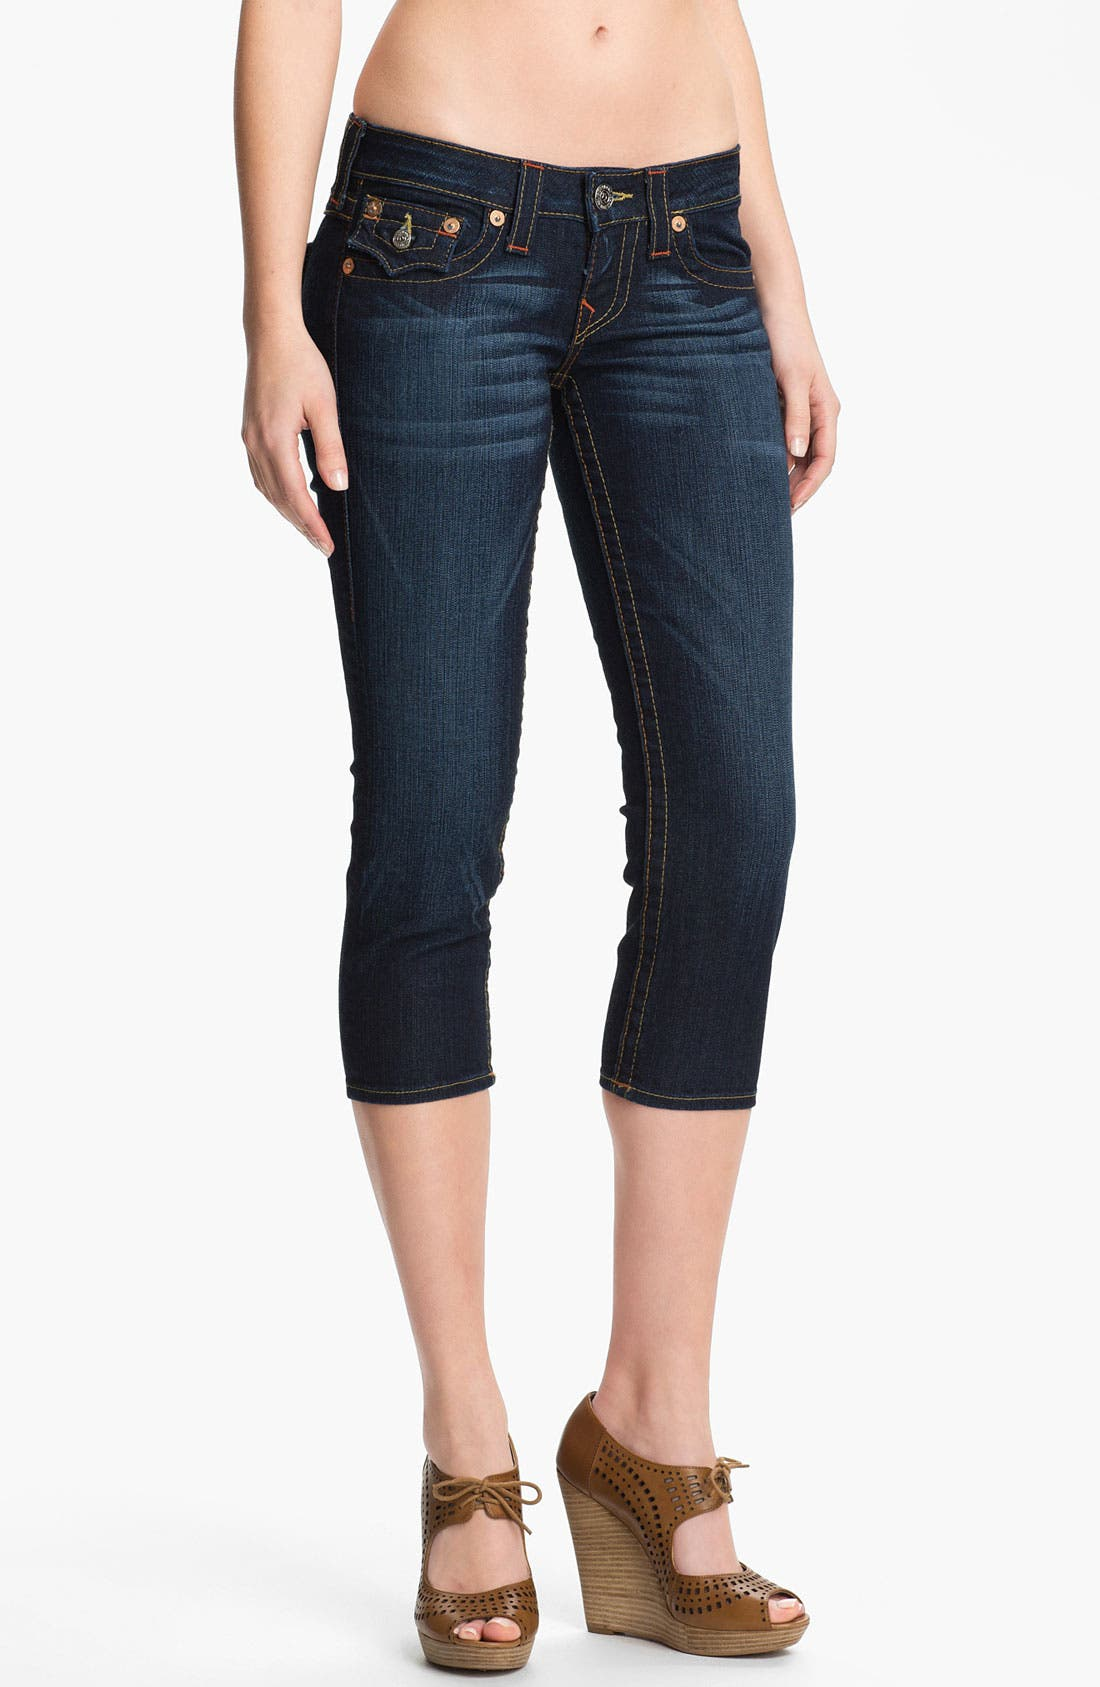 Alternate Image 1 Selected - True Religion Brand Jeans 'Lily' Crop Skinny Jeans (Dark Pony Express)